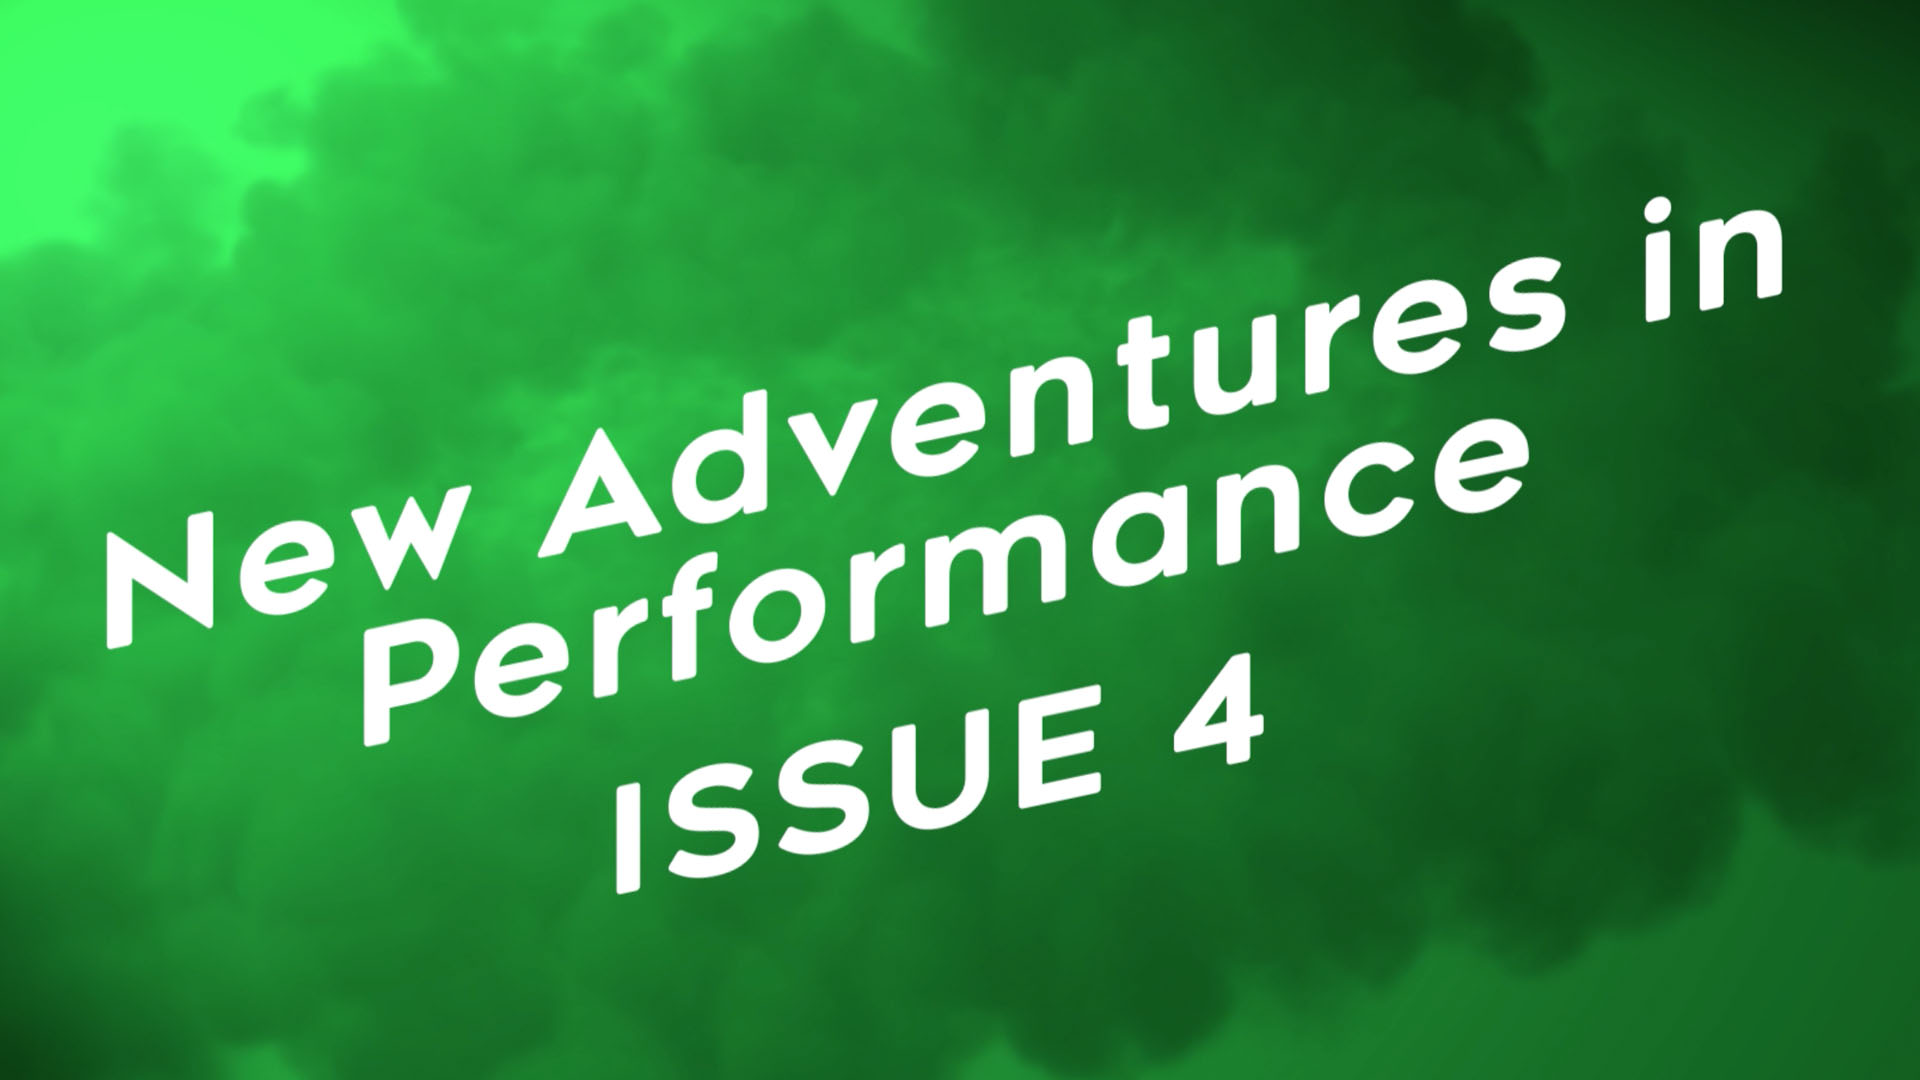 New Adventures in Performance - Issue 4 - December 2019